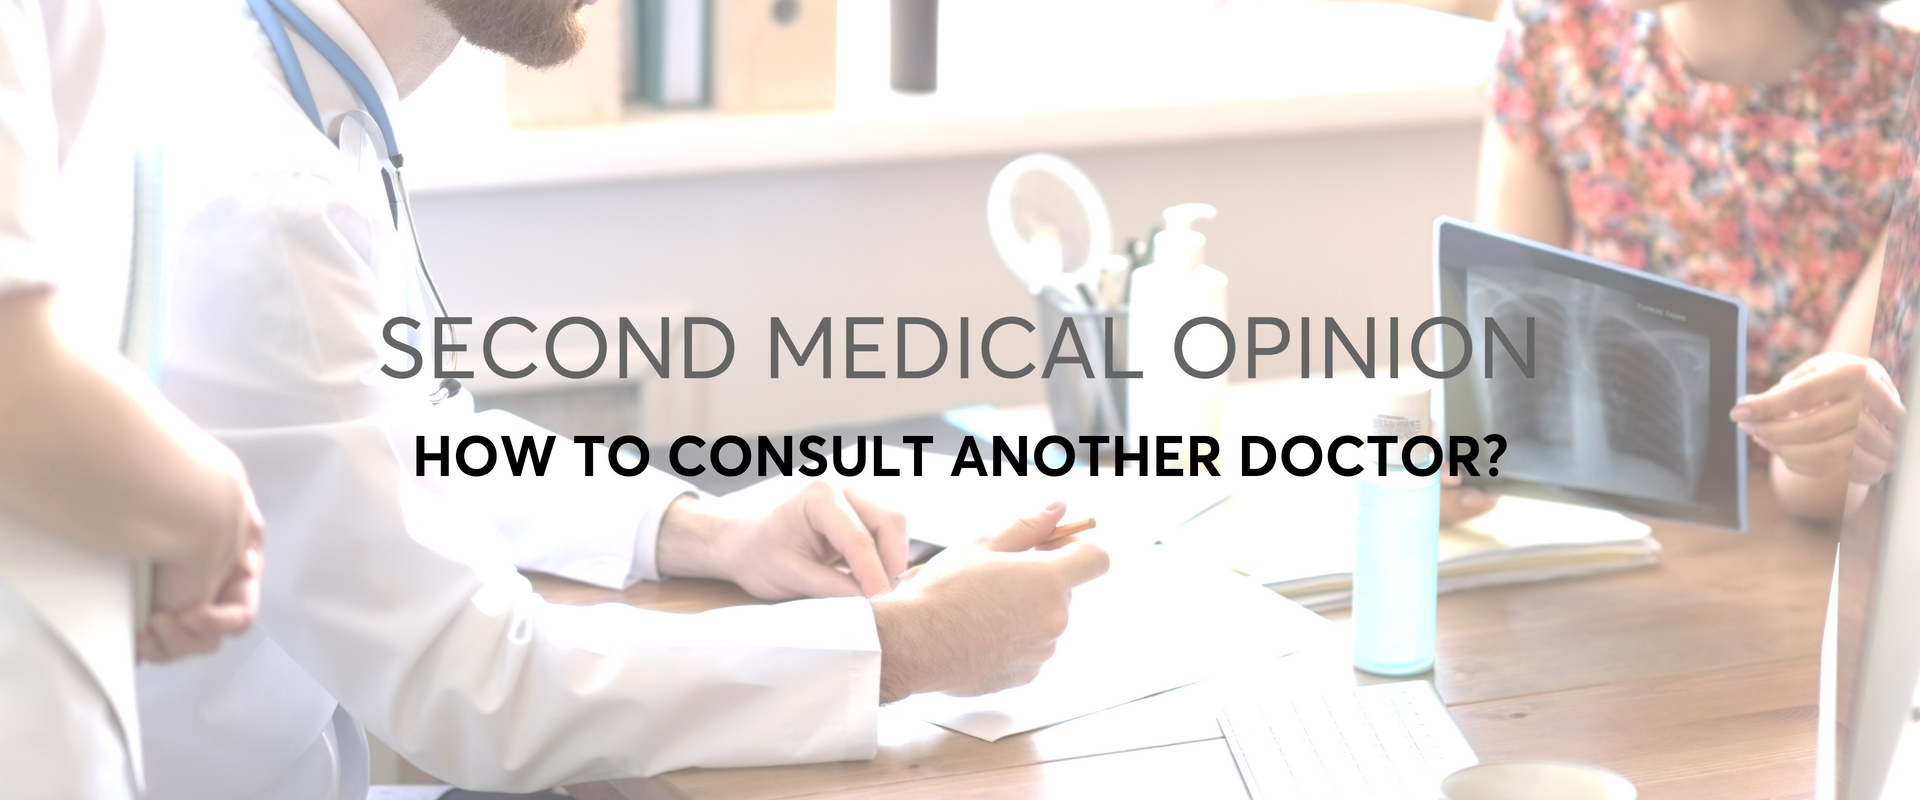 Second Medical Opinion: How to consult another doctor? (Part 2)